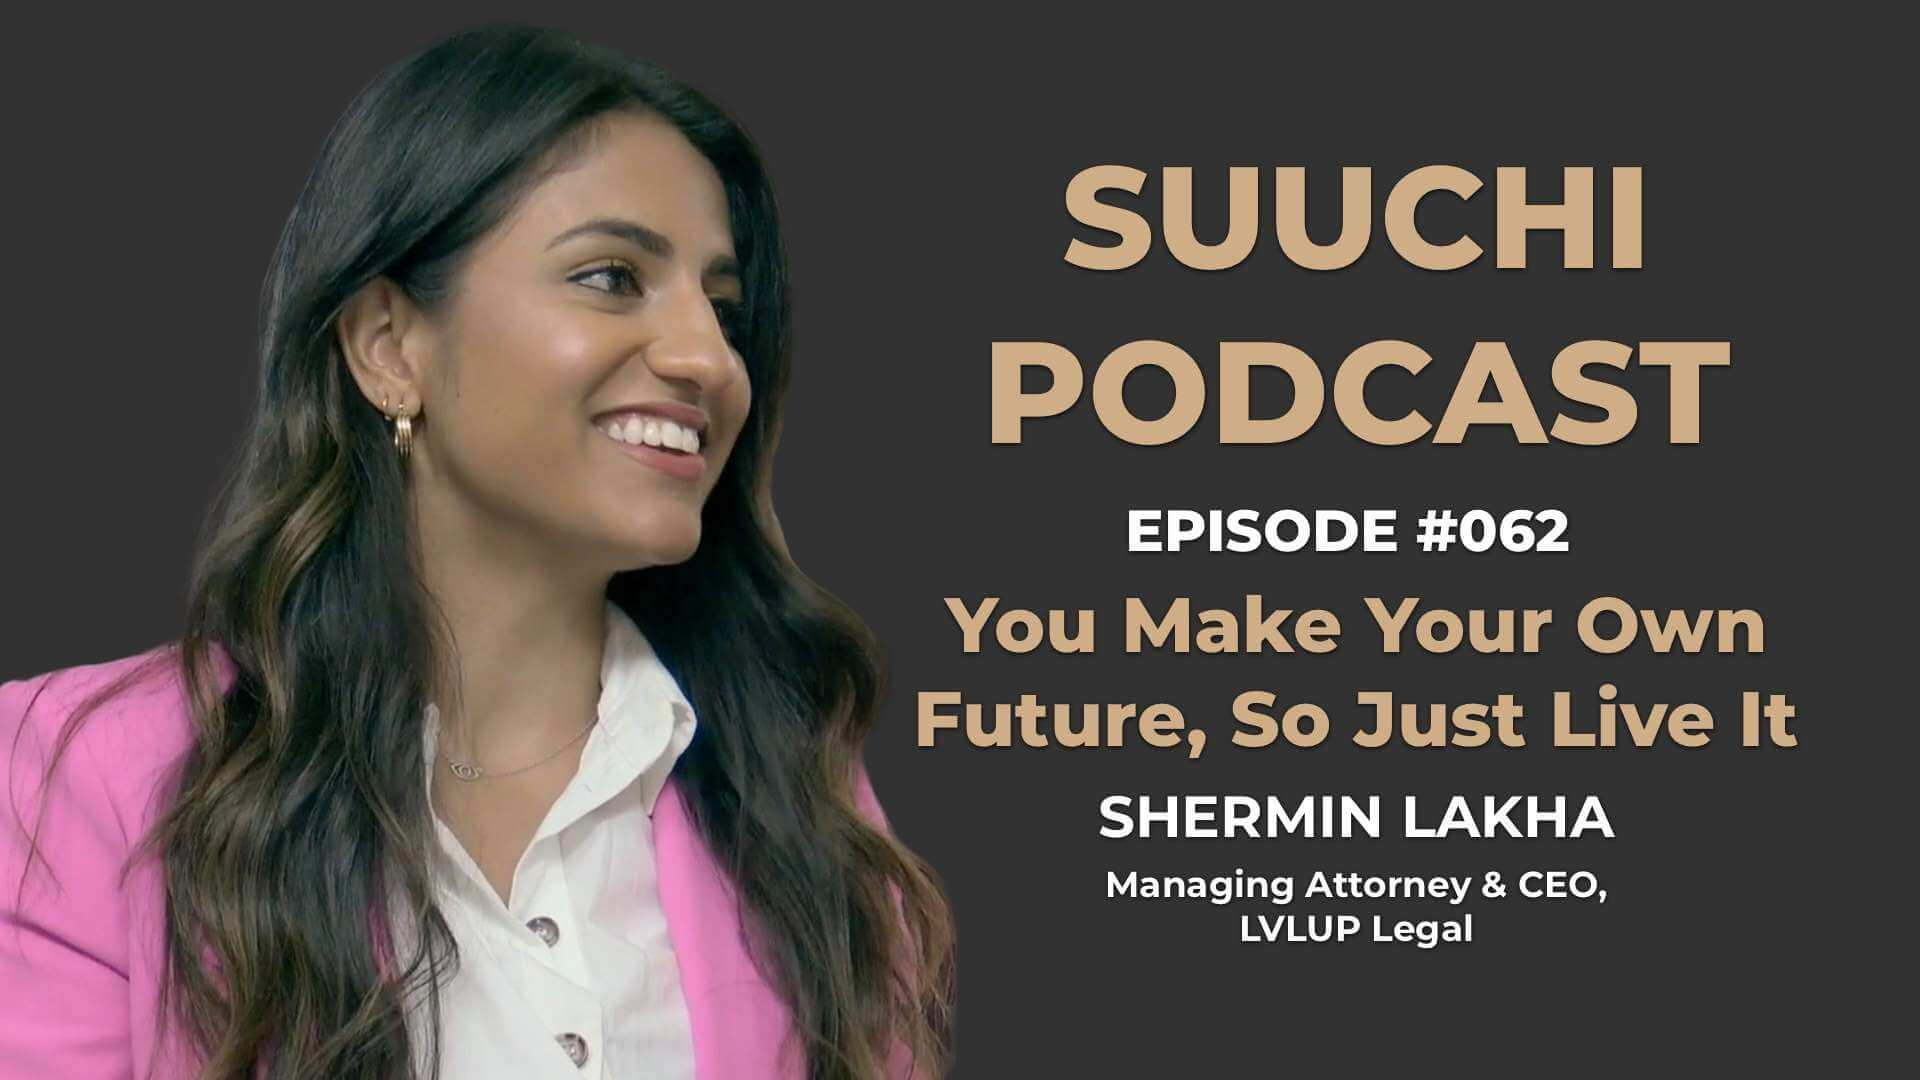 Suuchi Podcast #62: Shermin Lakha, Managing Attorney & CEO of LVLUP, - You Make Your Own Future & Life, So Just Live It